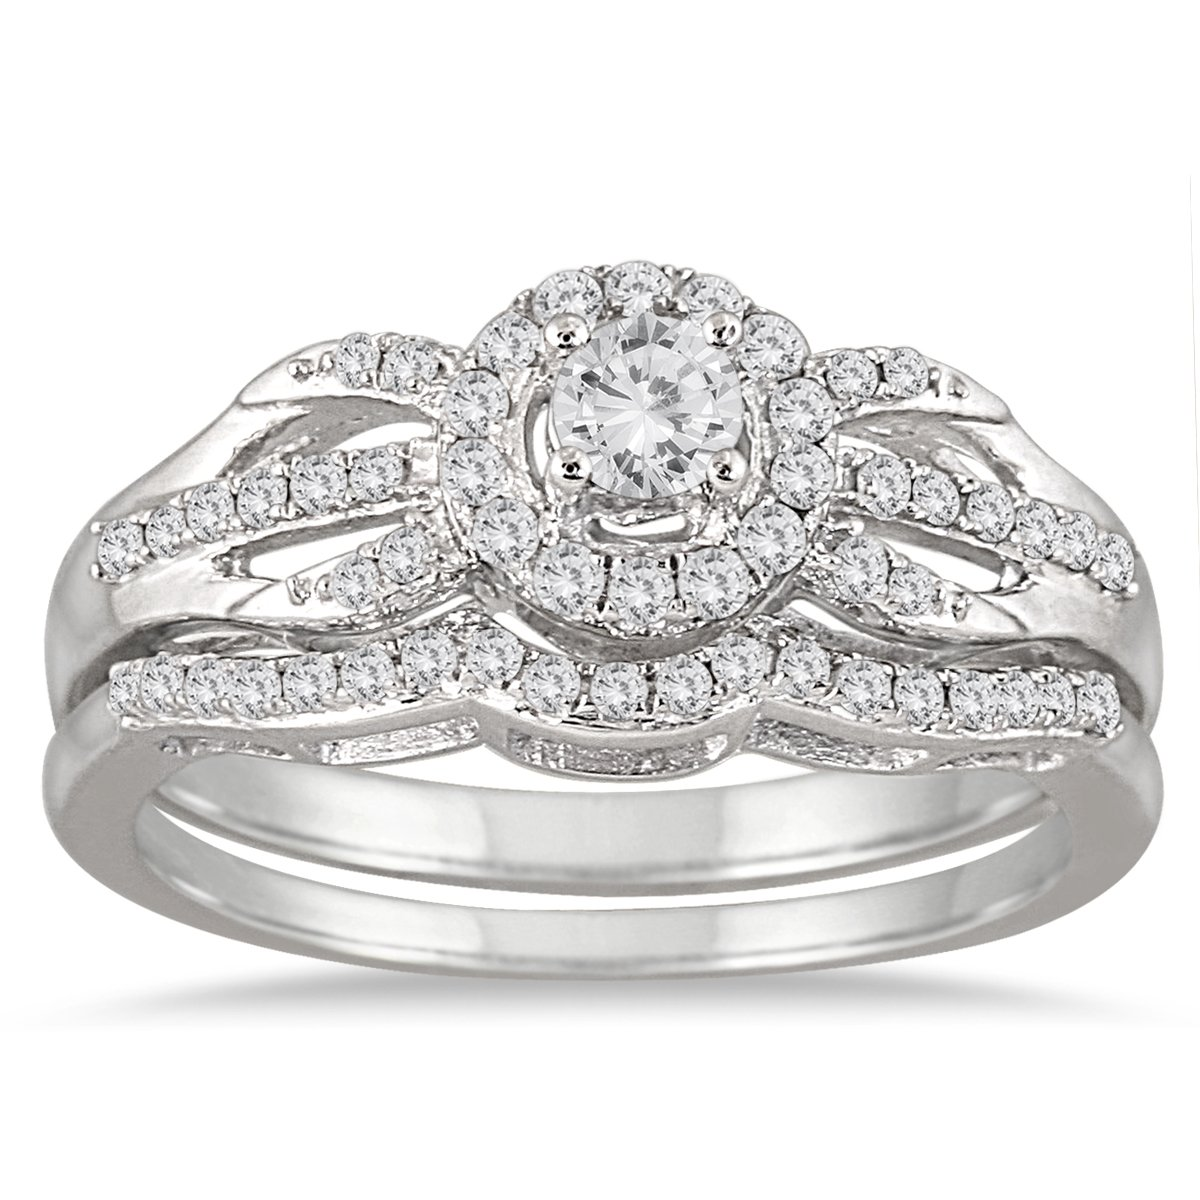 AGS Certified 1/2 Carat TW Diamond Bridal Set in 10K White Gold (K-L Color, I2-I3 Clarity)